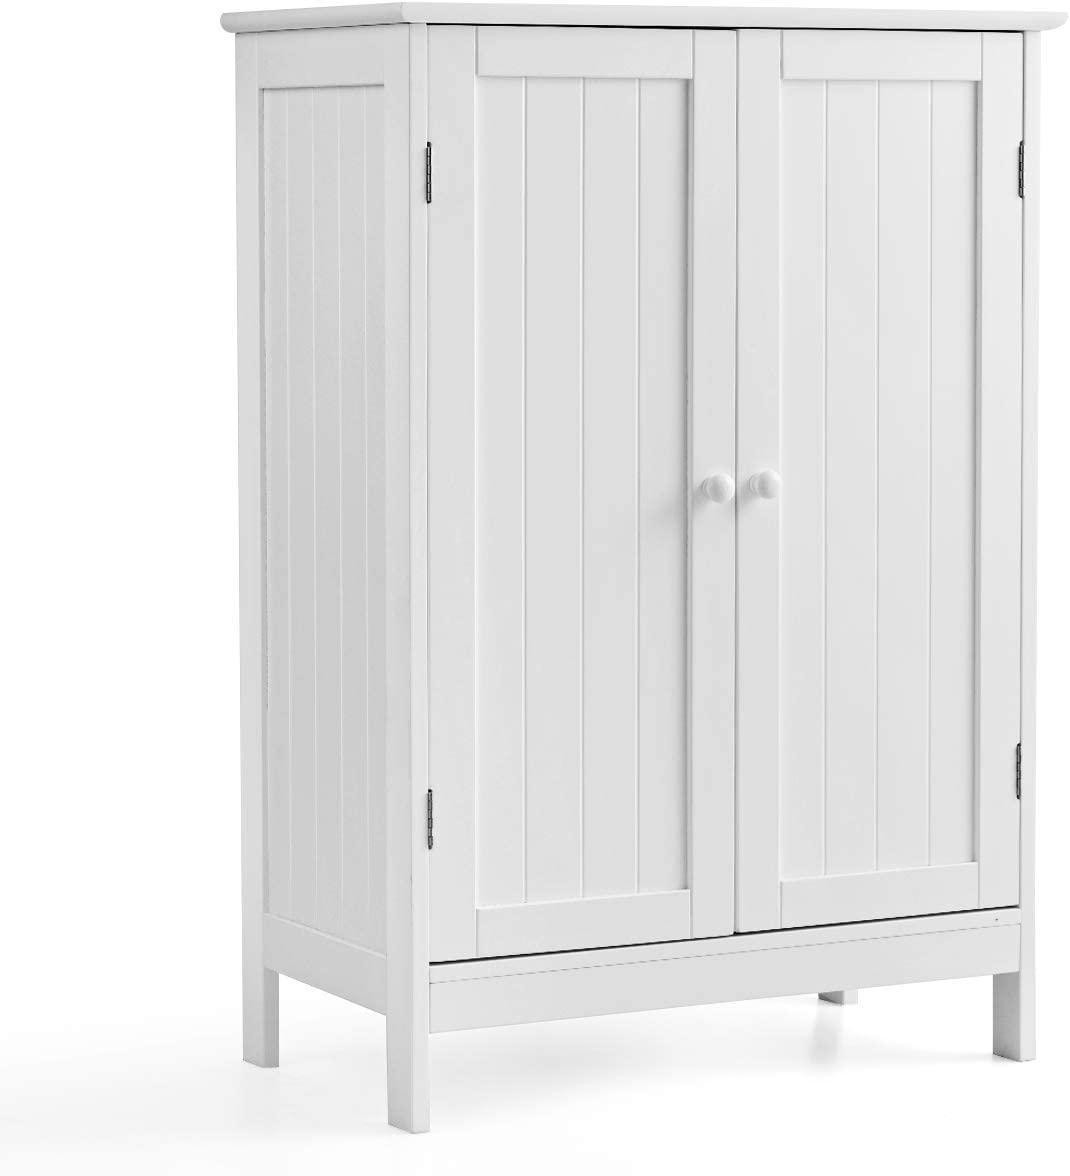 GLACER Bathroom Floor Cabinet, Wooden Freestanding Storage Cabinet with Double Doors, Suitable for Bathroom, Living Room, Bedroom, Entryway, 23.5 x 14 x 34 inches White